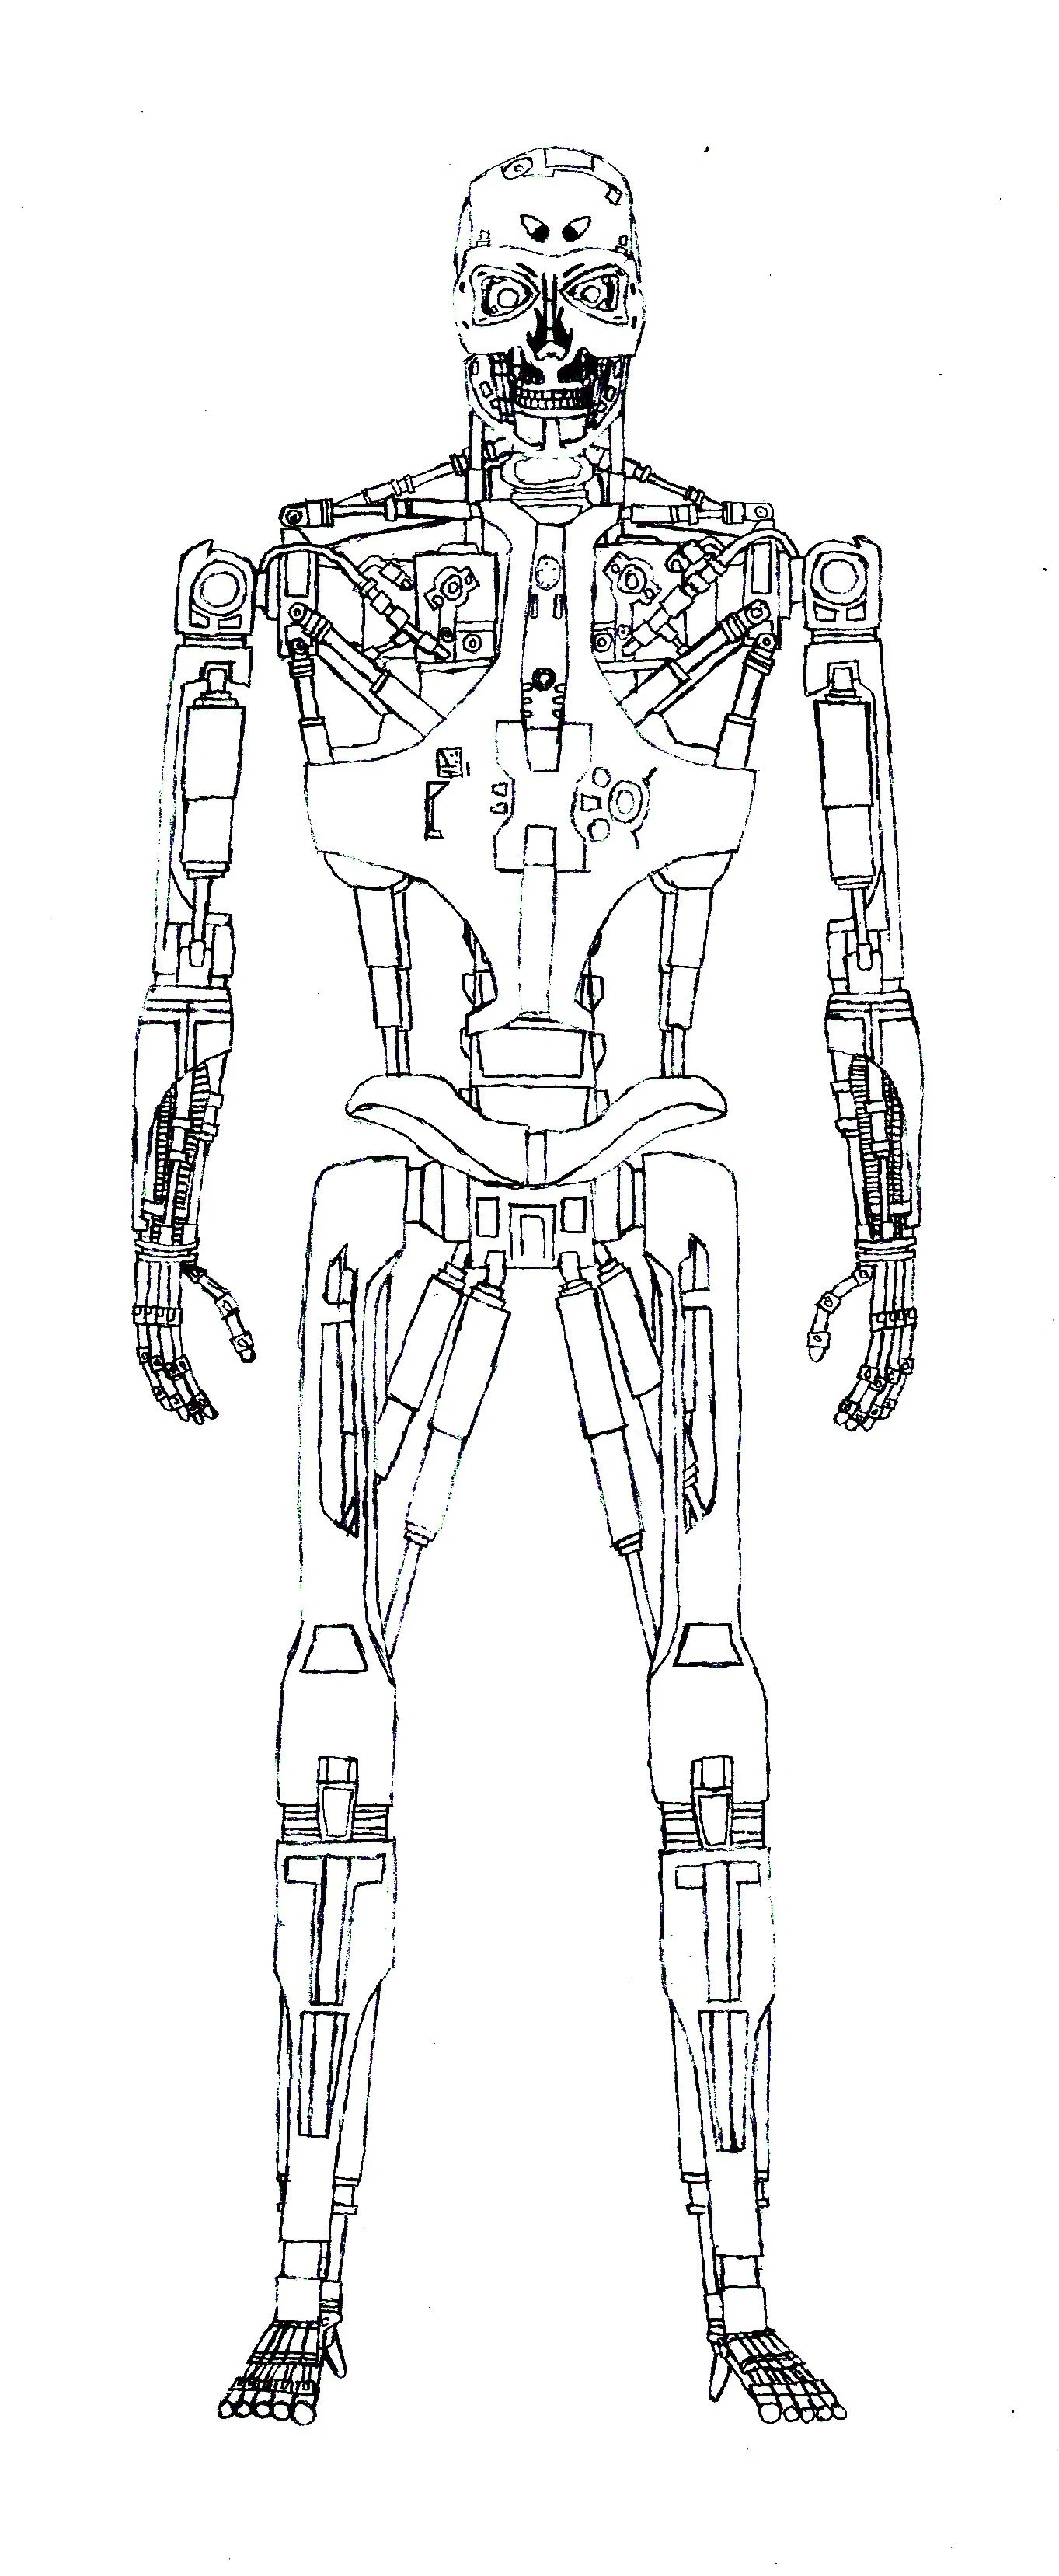 schematic body drawing